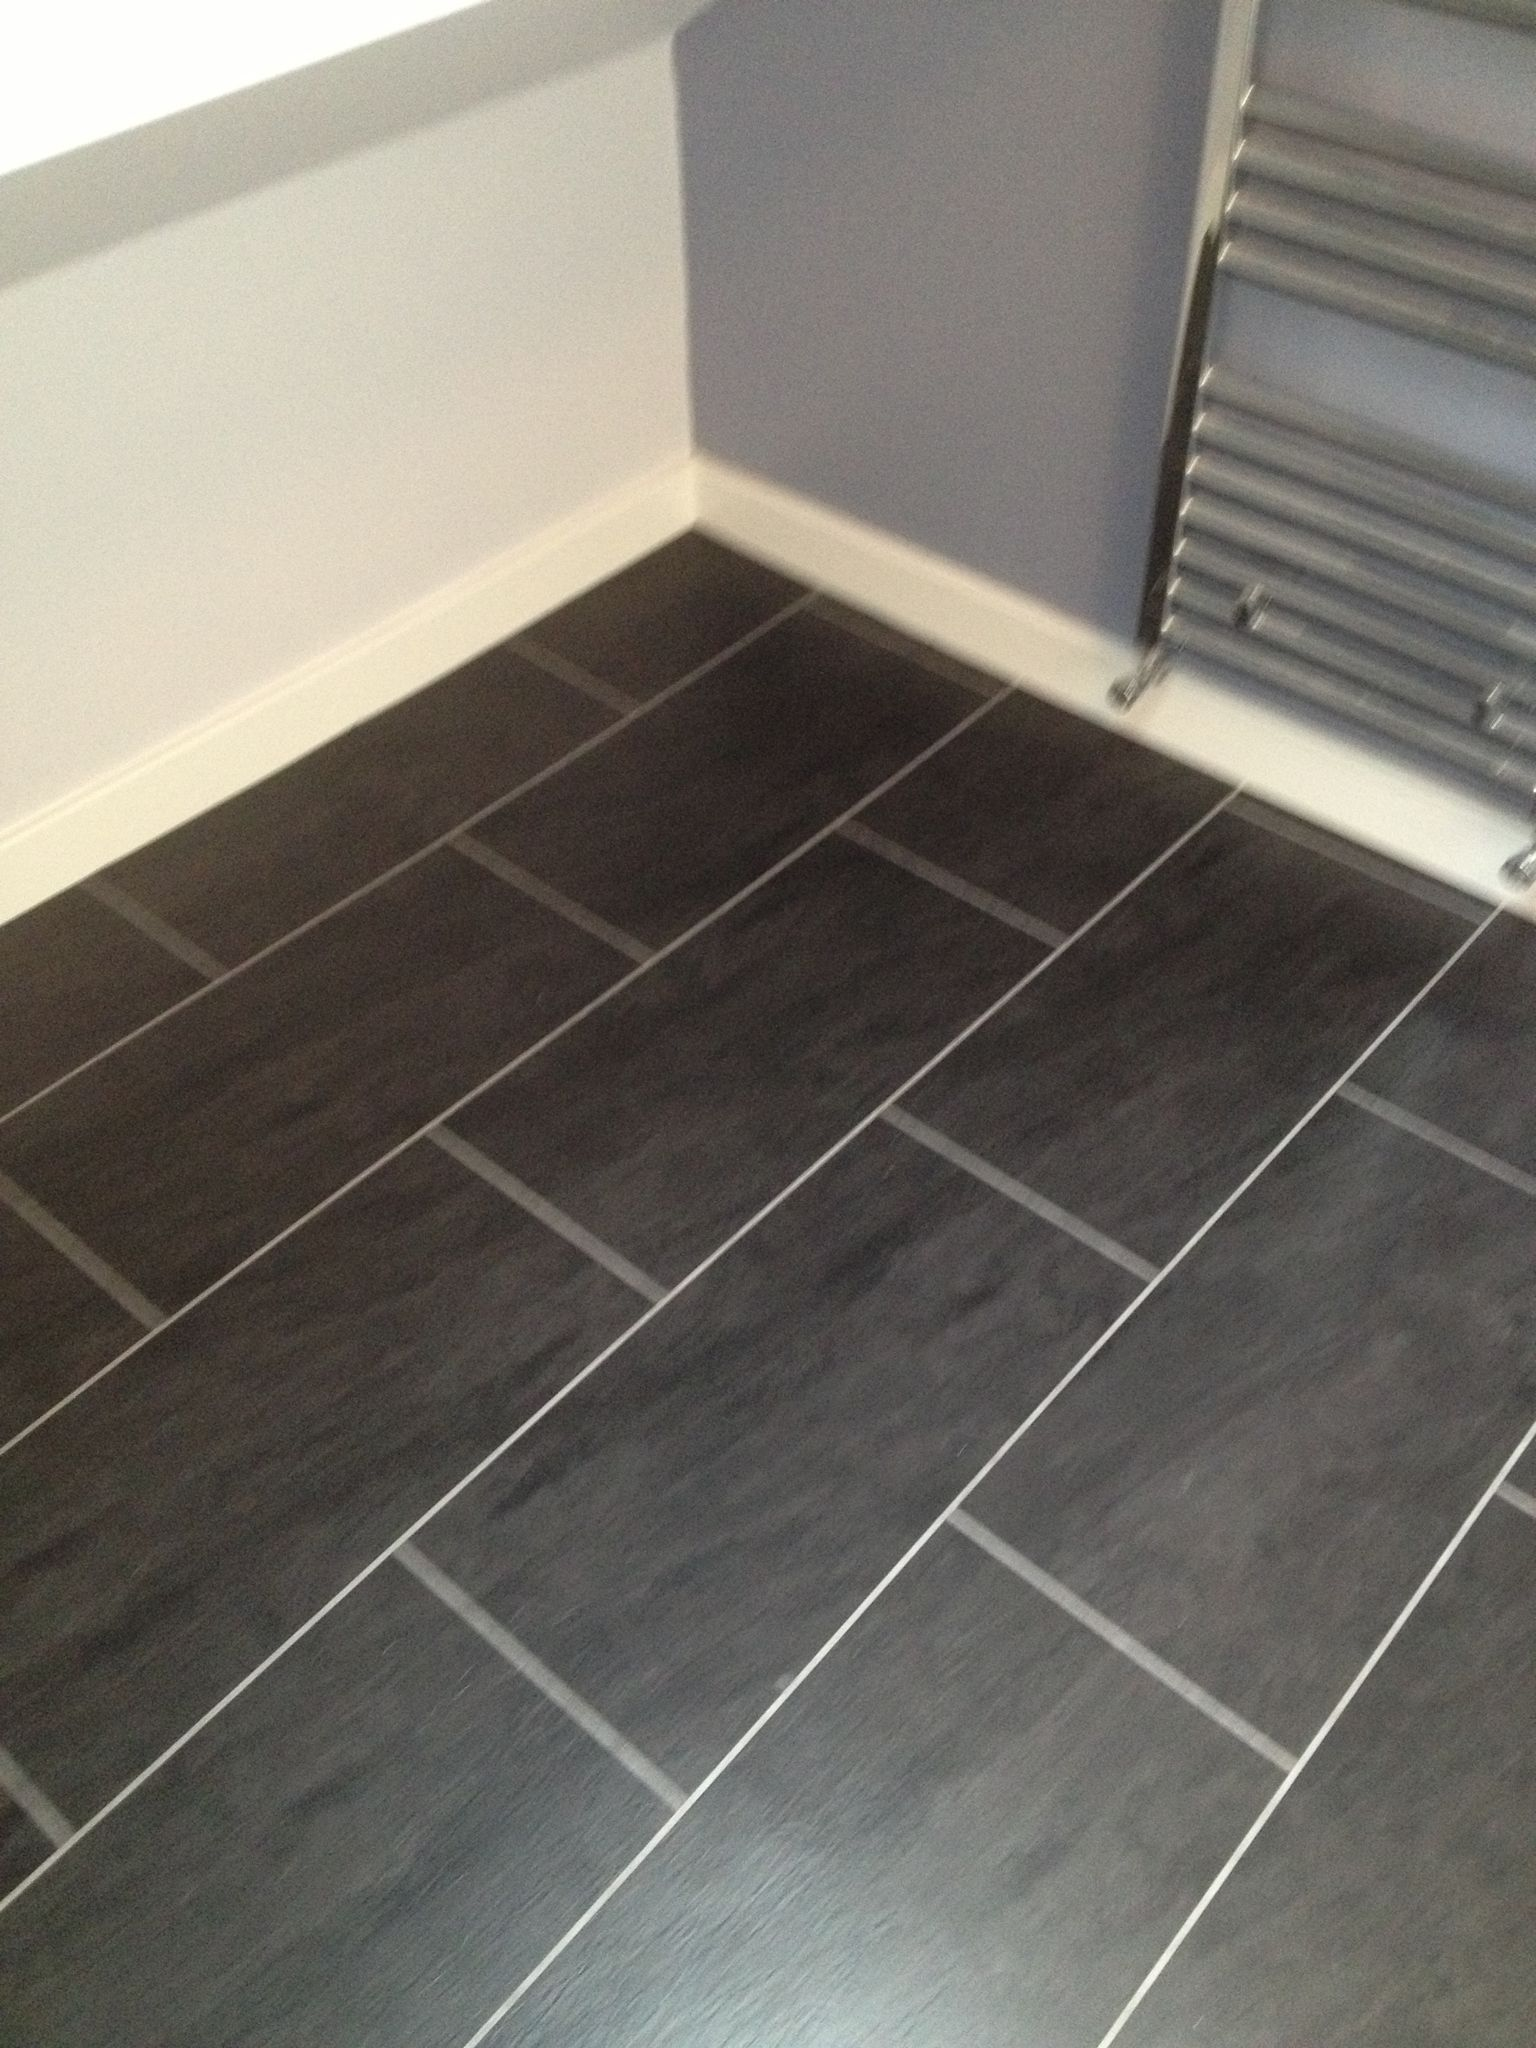 Polyflor colonia welsh raven slate with an ice grout strip home polyflor colonia welsh raven slate with an ice grout strip doublecrazyfo Image collections